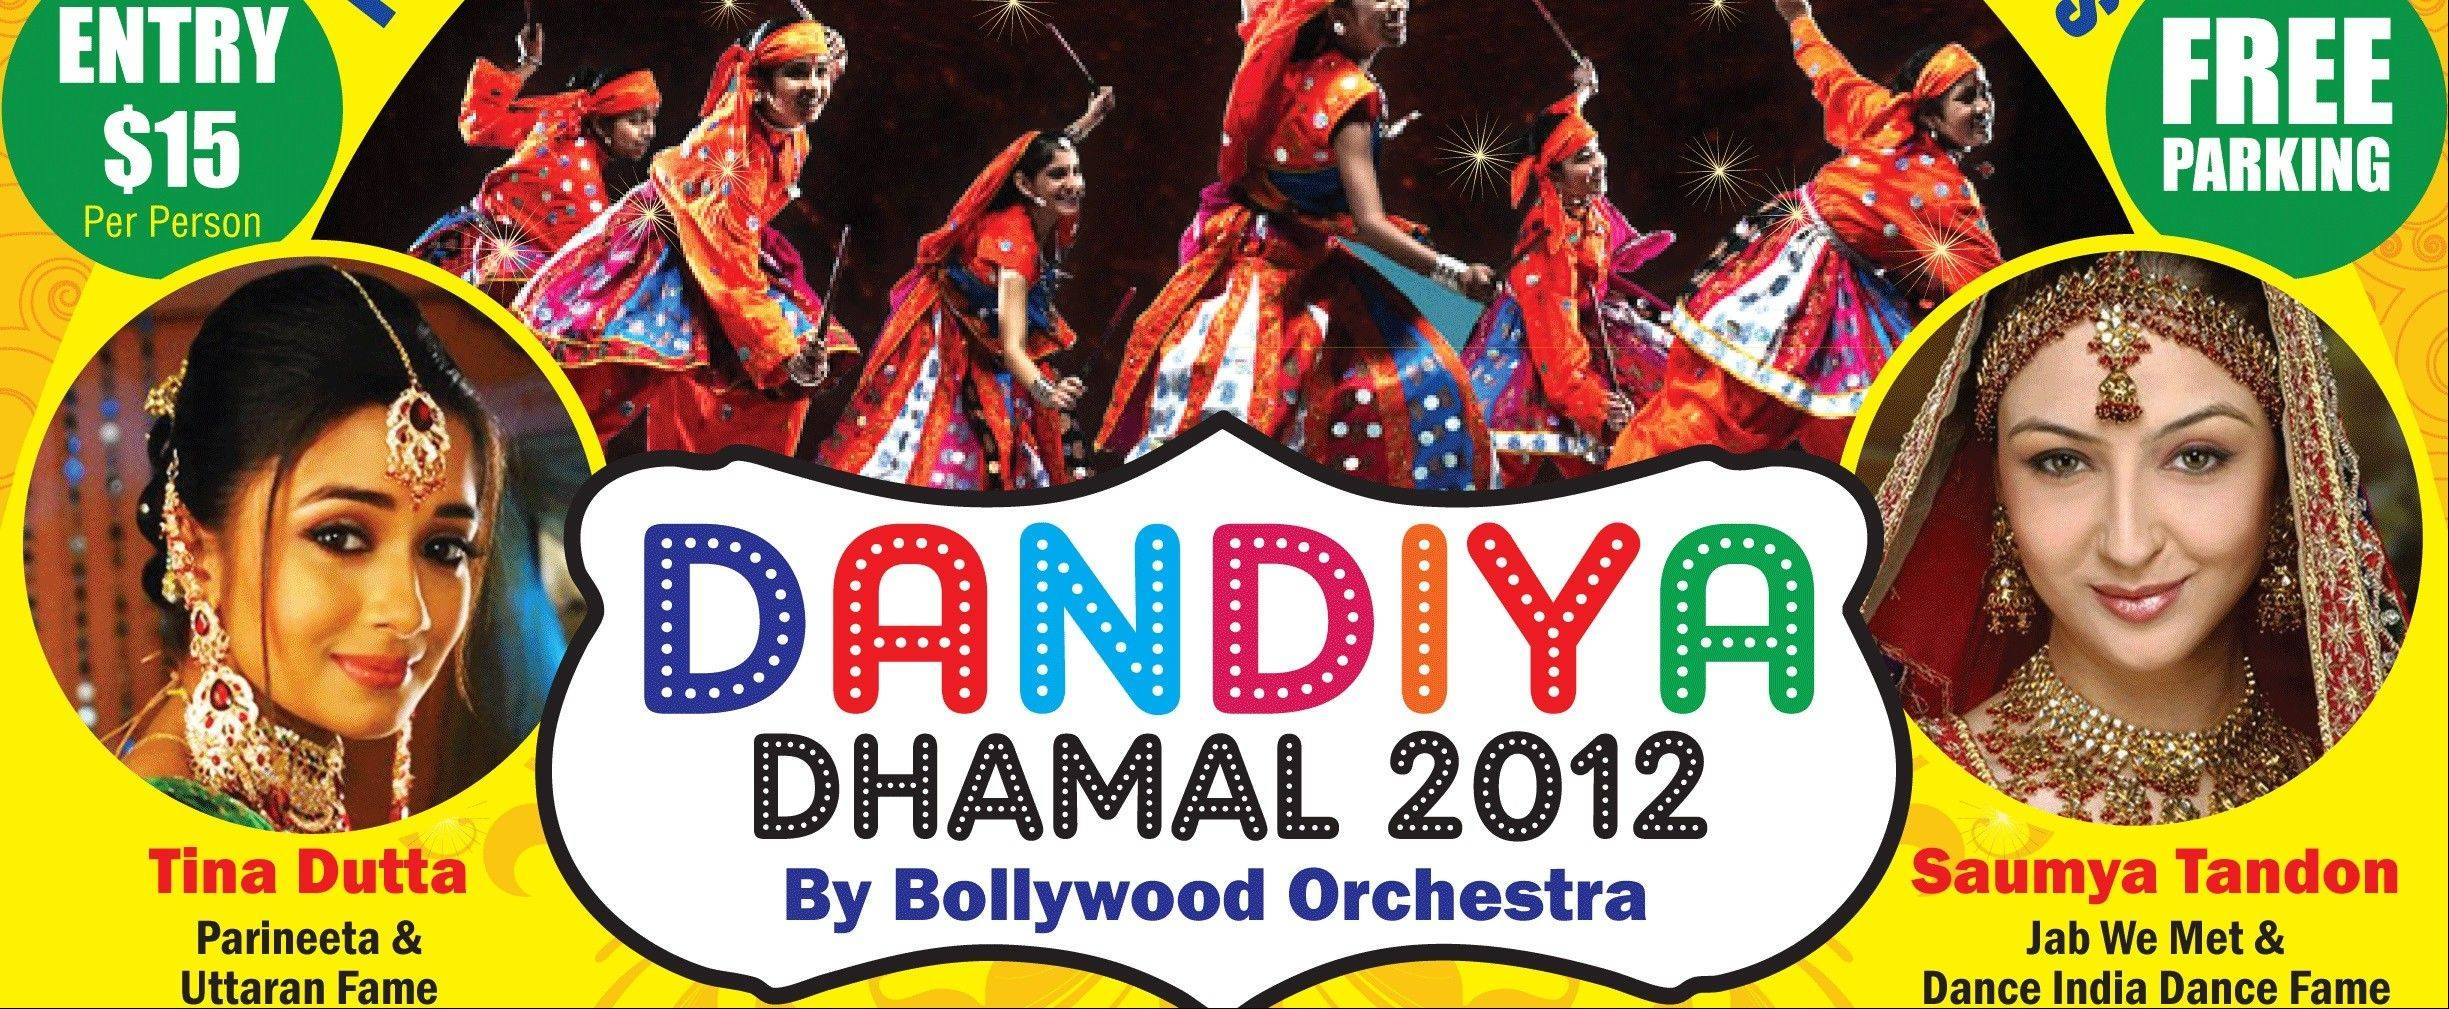 The Dandiya Dhamal 2012, featuring Tina Dutta and Saumya Tandon, takes place at the Renaissance Schaumburg Hotel and Convention Center on Saturday, Oct. 6.